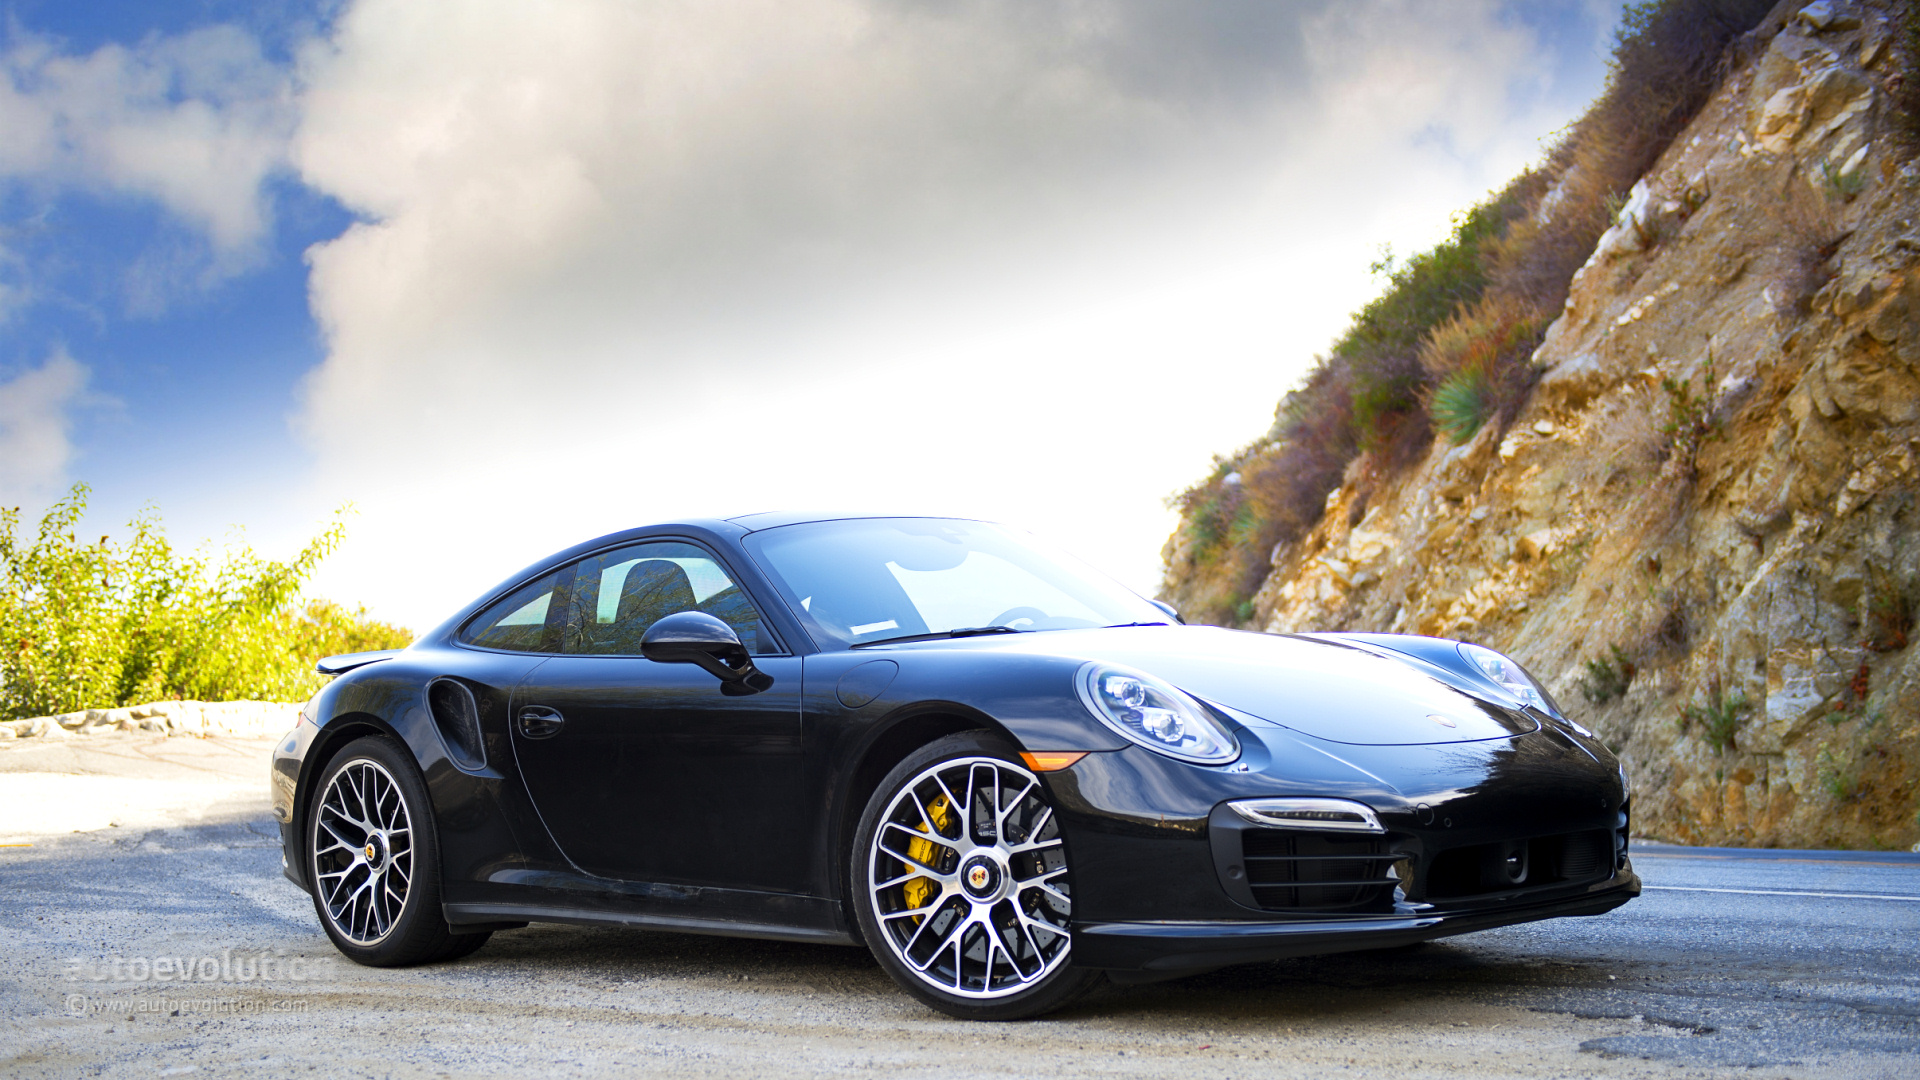 2014 porsche 911 turbo s review autoevolution - 911 Porsche Turbo 2015